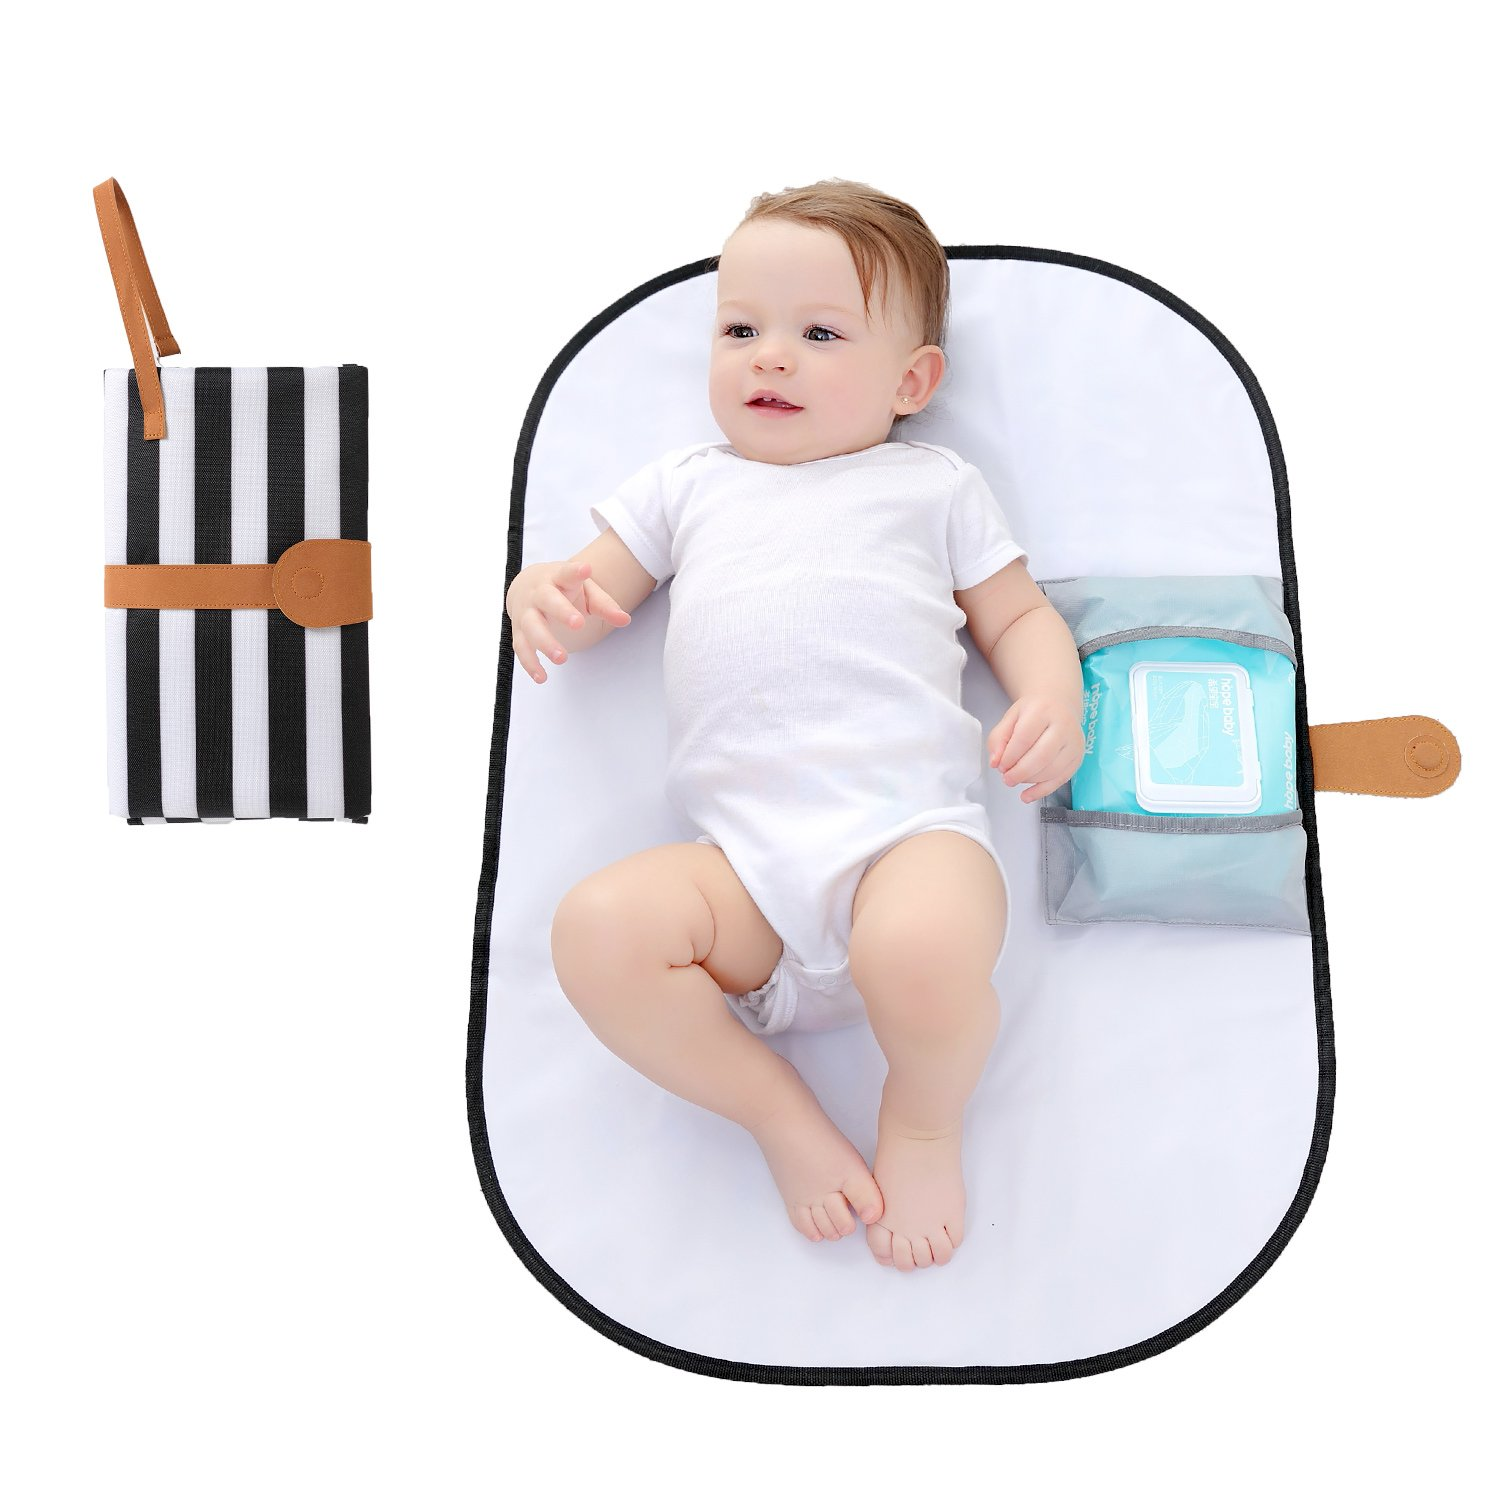 Dreamsoule Portable Diaper Changing Pad Foldable Multi-use Waterproof Diaper Mat Change Diaper Clutch in Any Places for Home/Outdoor/Travel - Black and White Stripes